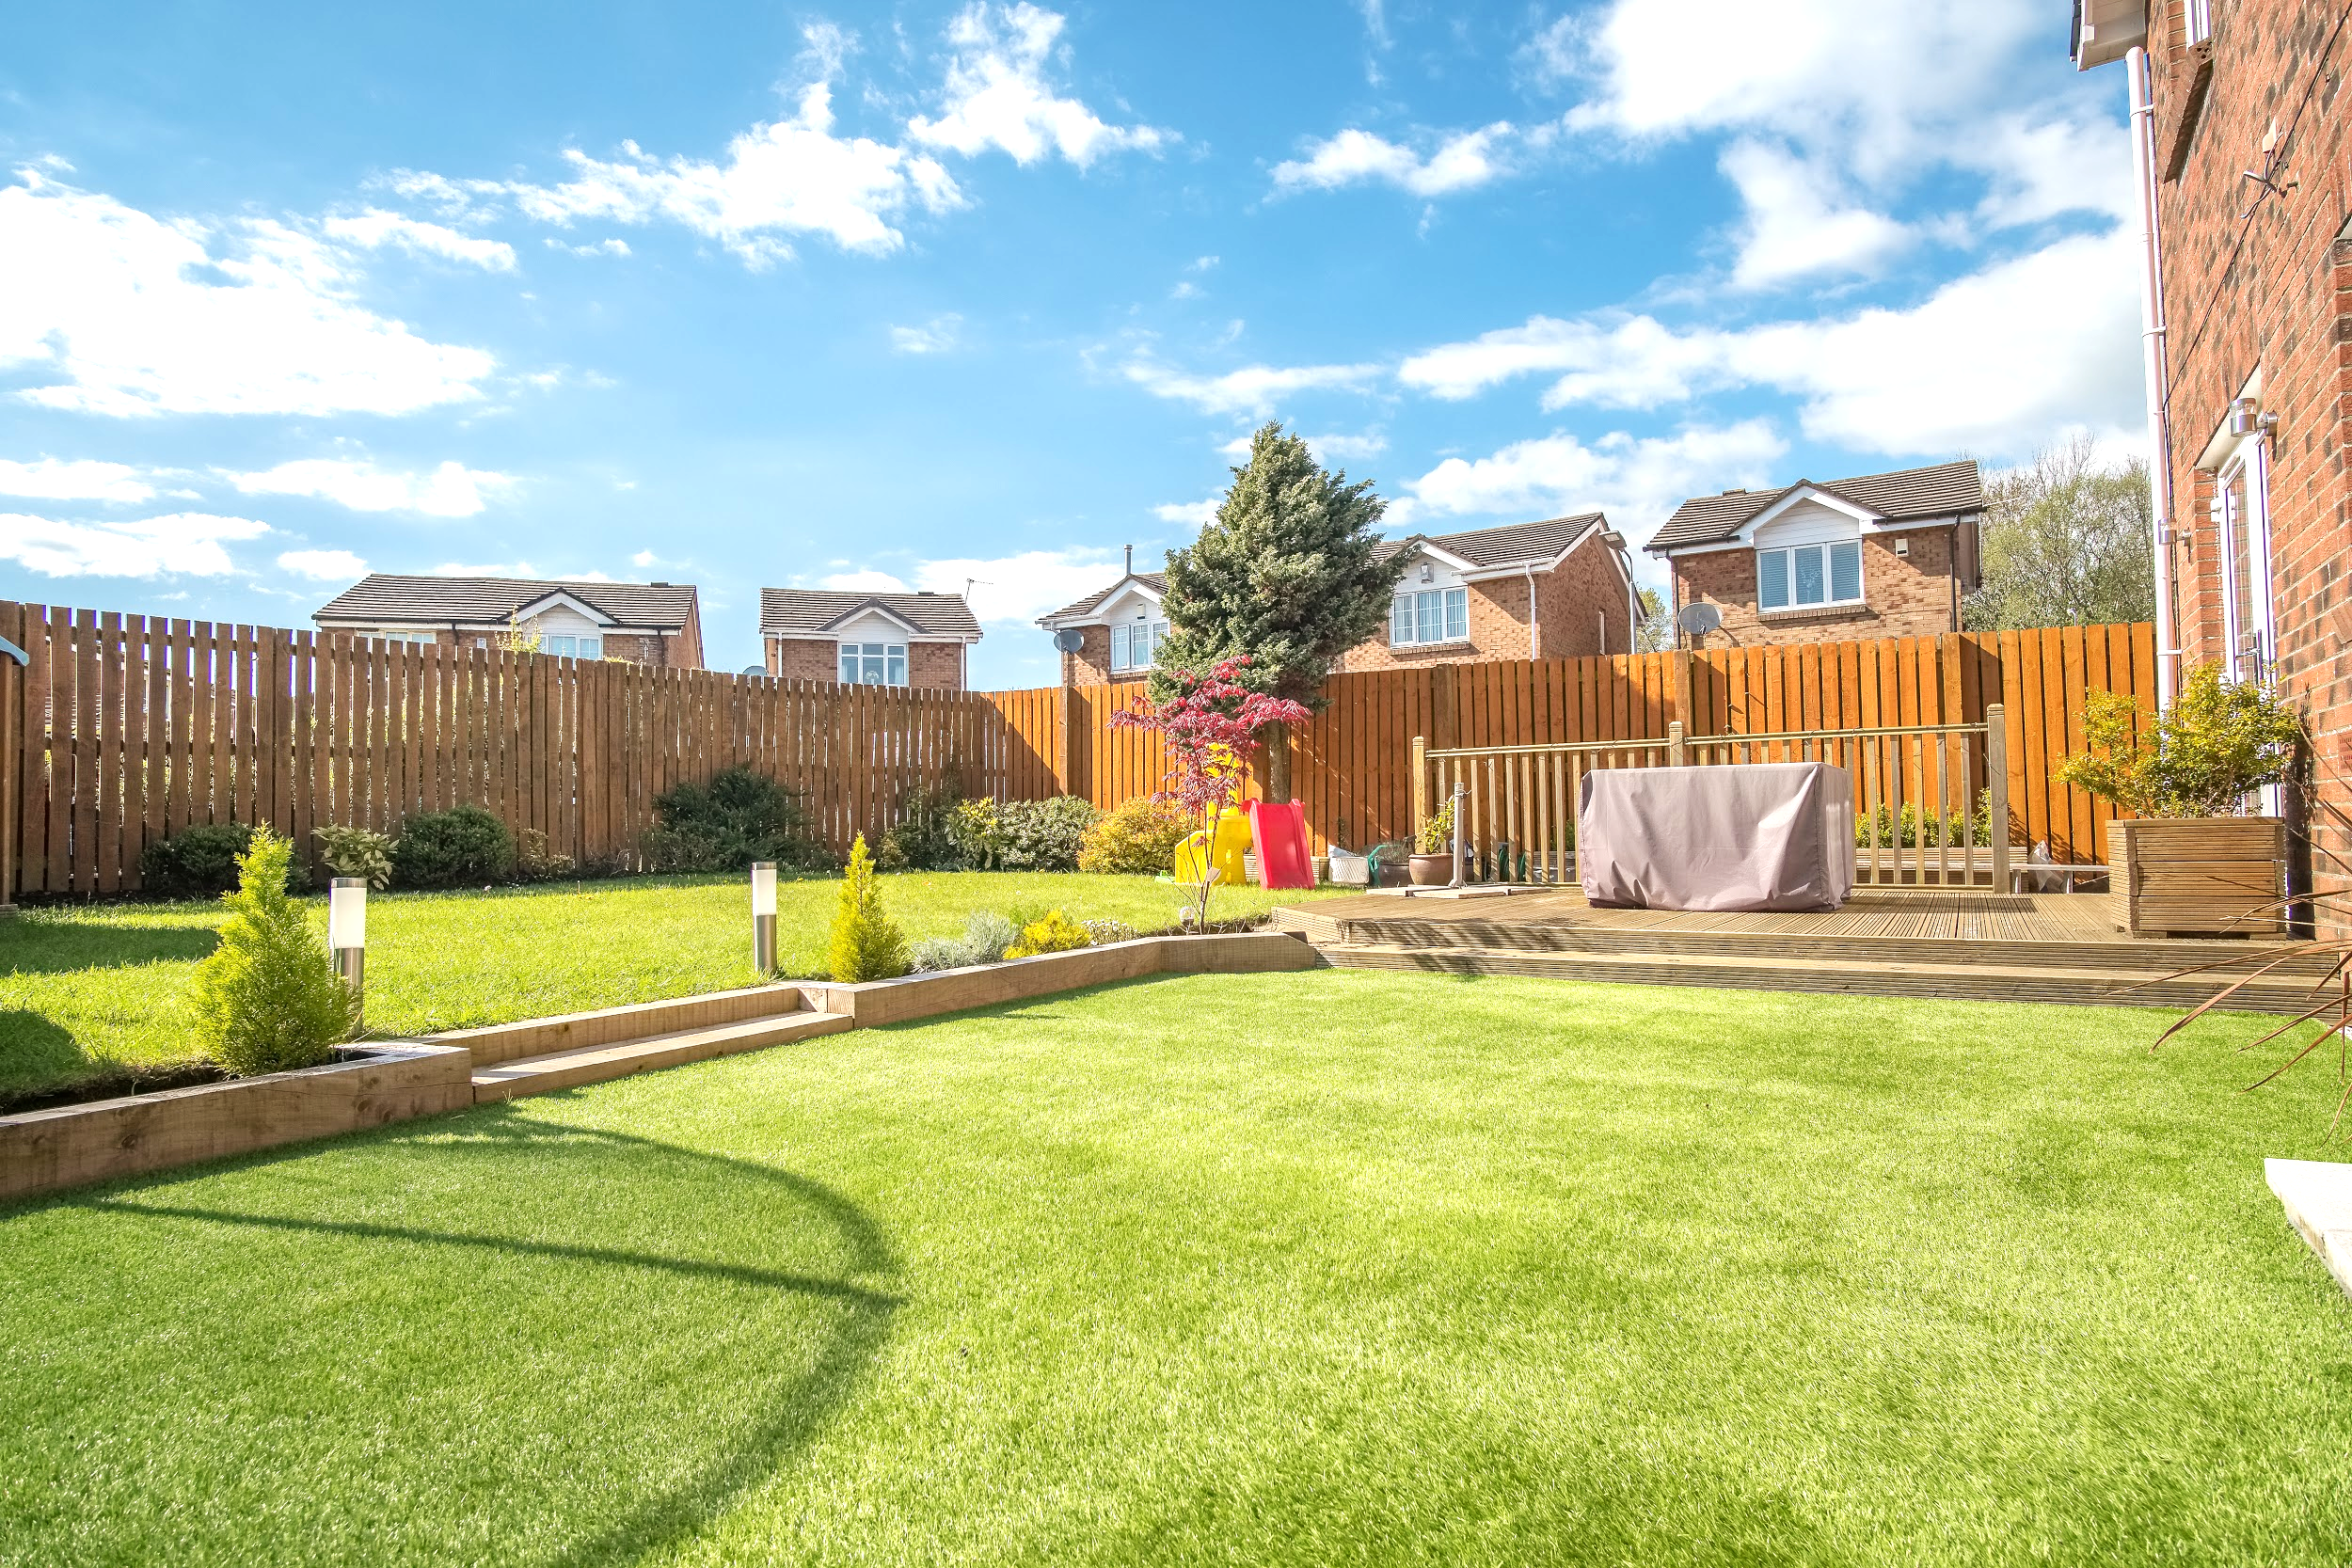 Reasons Why Artificial Grass Is An Asset To Your Home